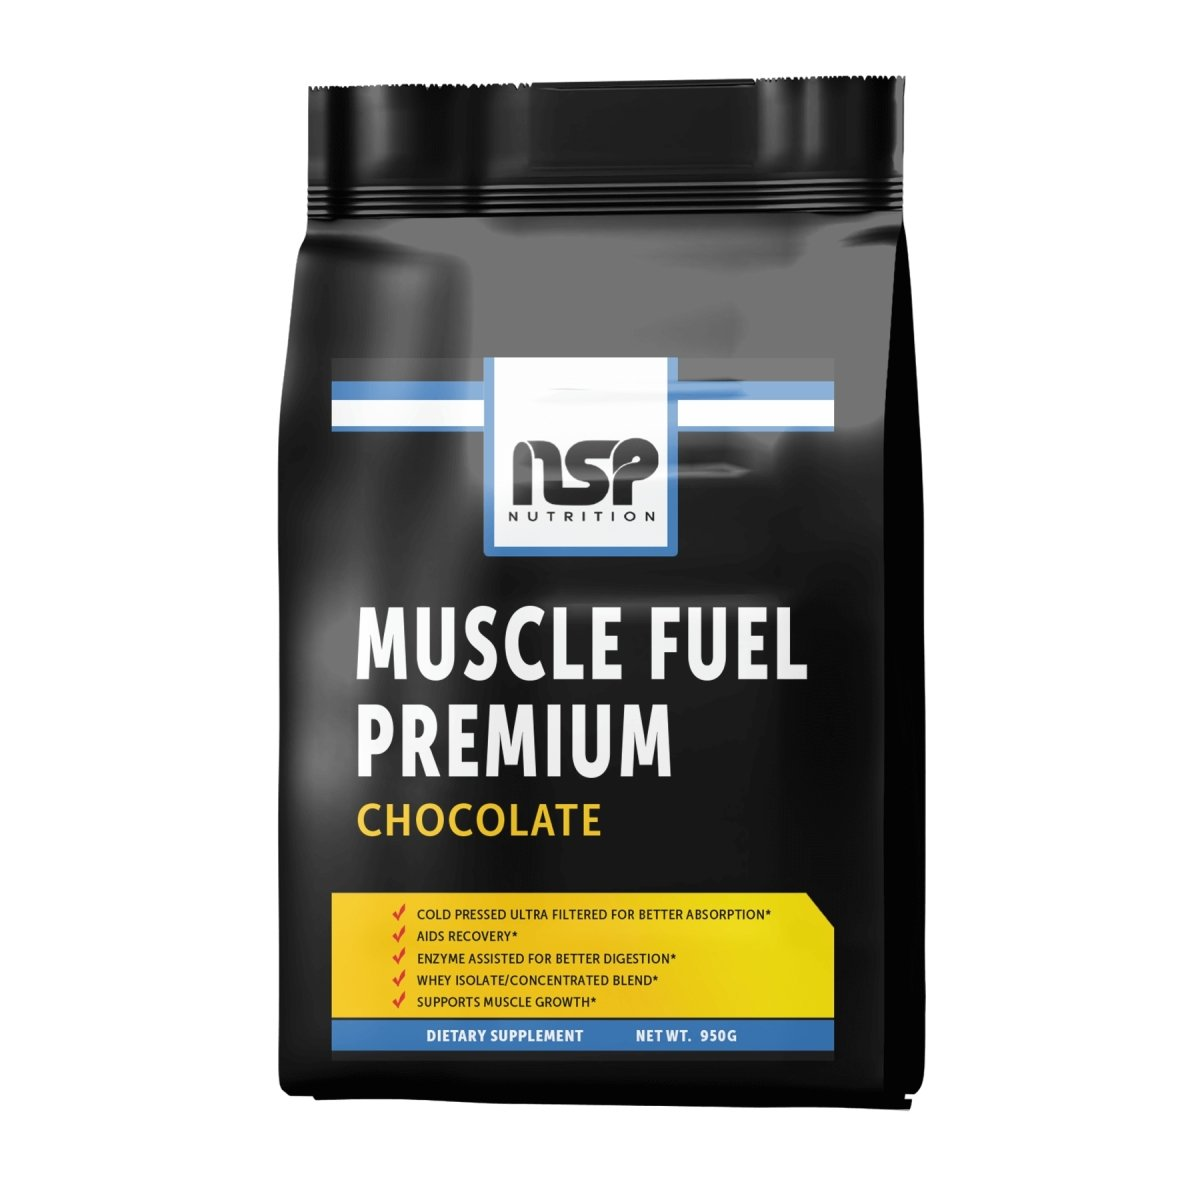 Muscle Fuel Premium - Chocolate - High Quality Whey Isolate - NSP Nutrition